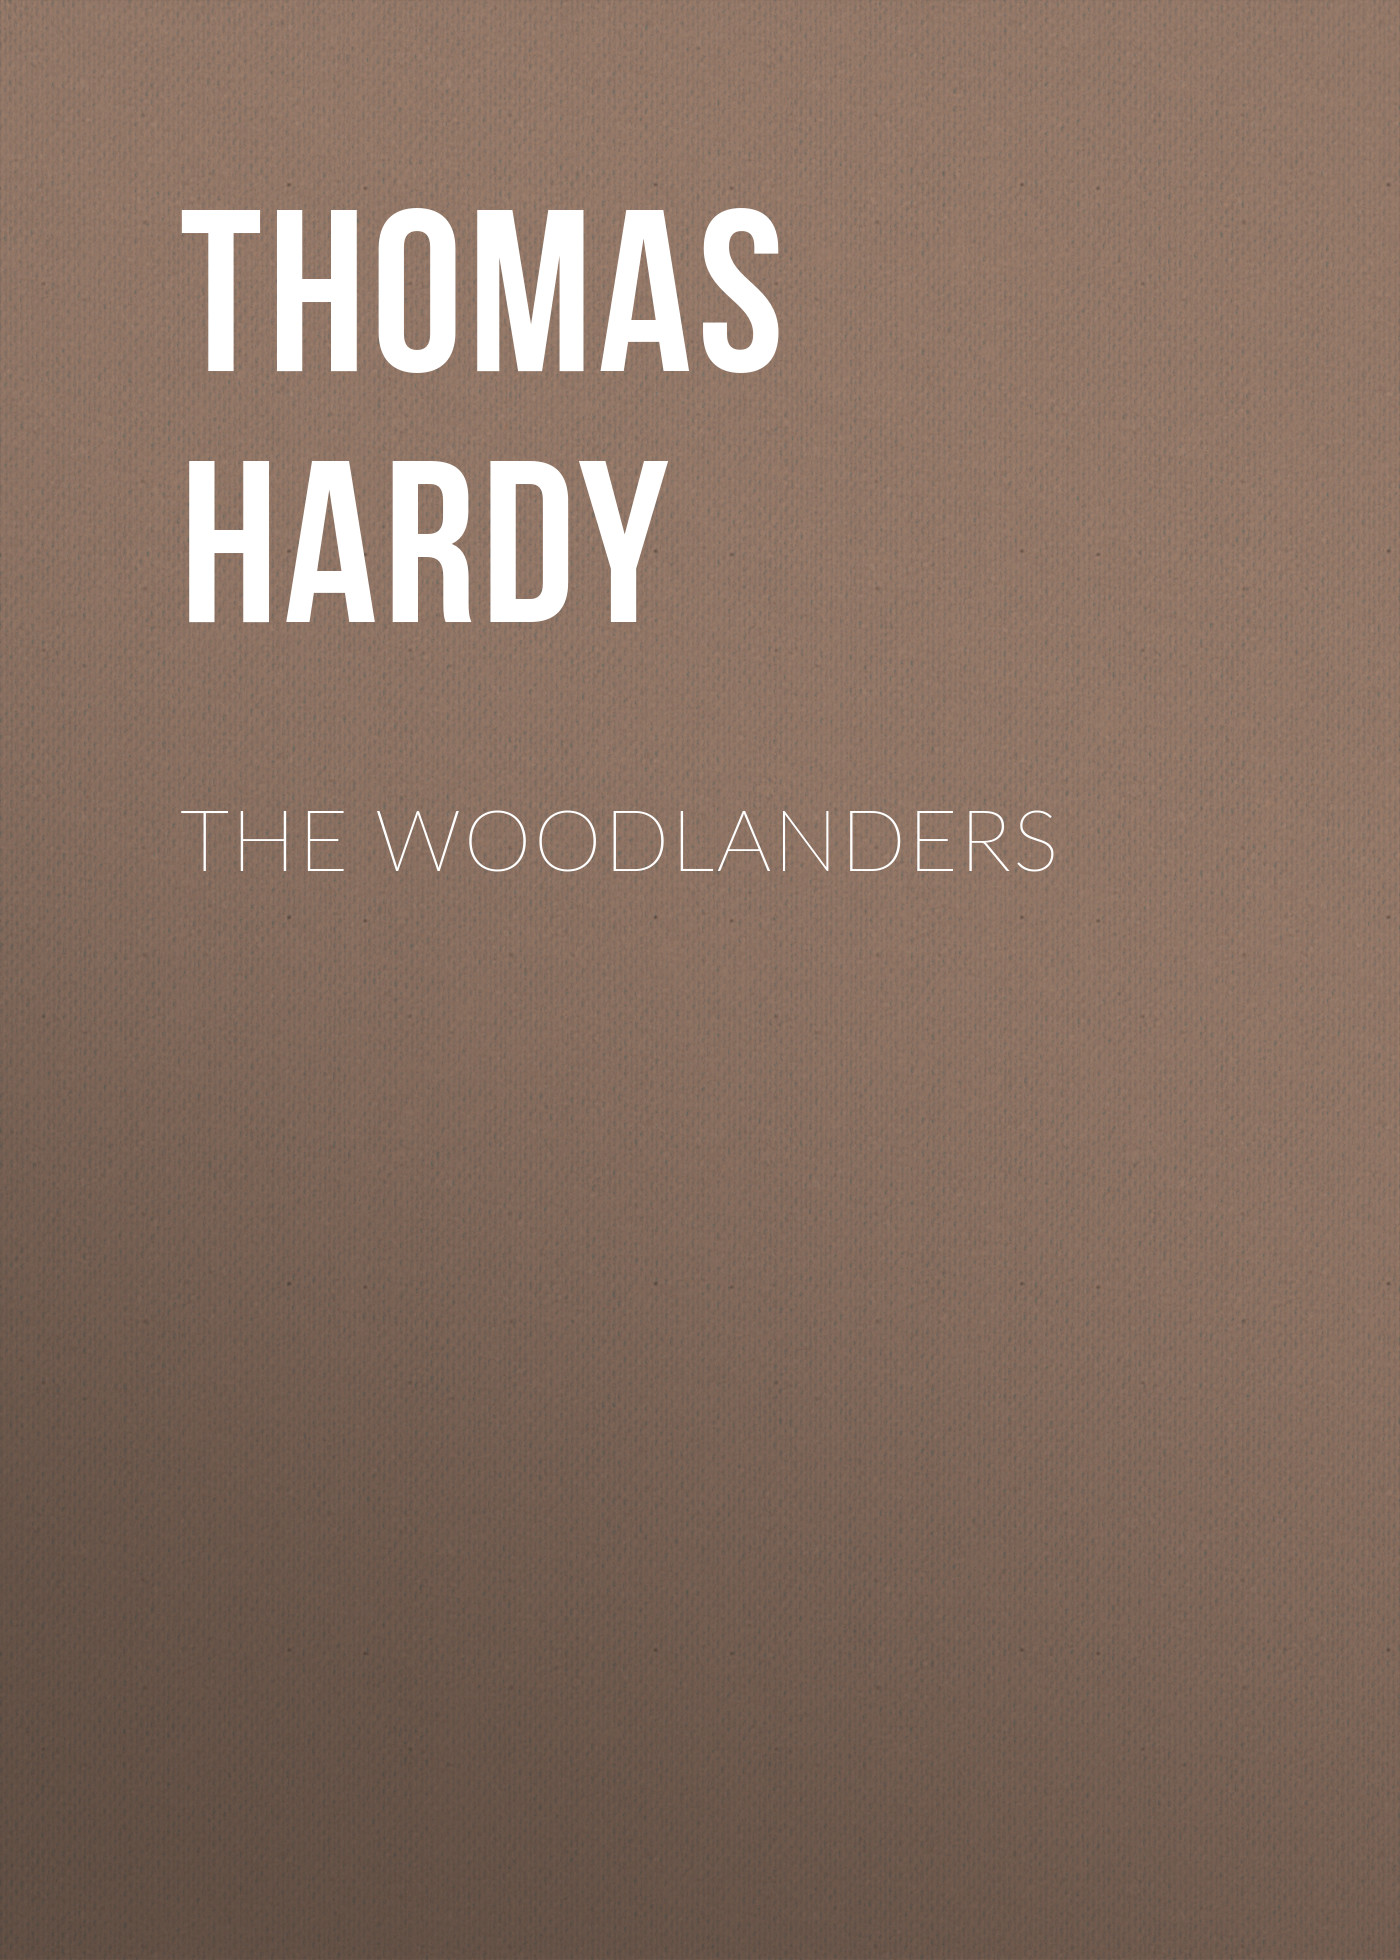 Thomas Hardy The Woodlanders cafe del mar xix volumen diecinueve 2 cd